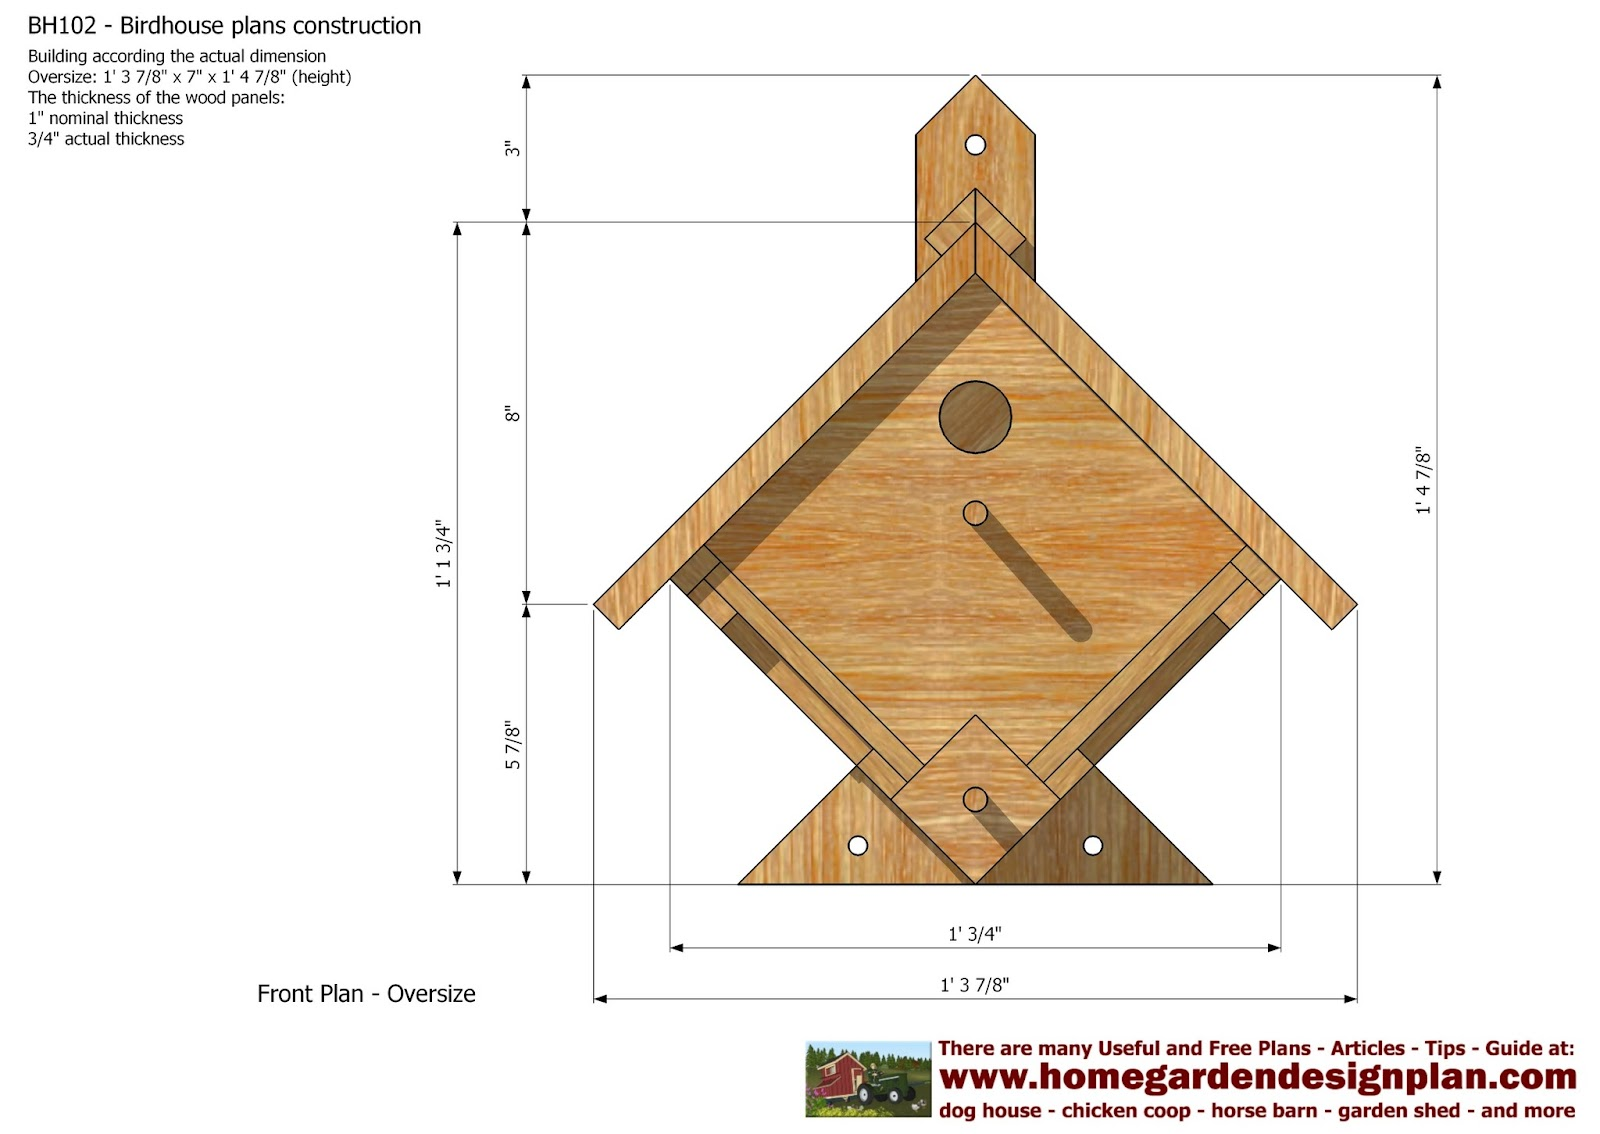 Mina bh102 bird house plans construction bird house for House design and build